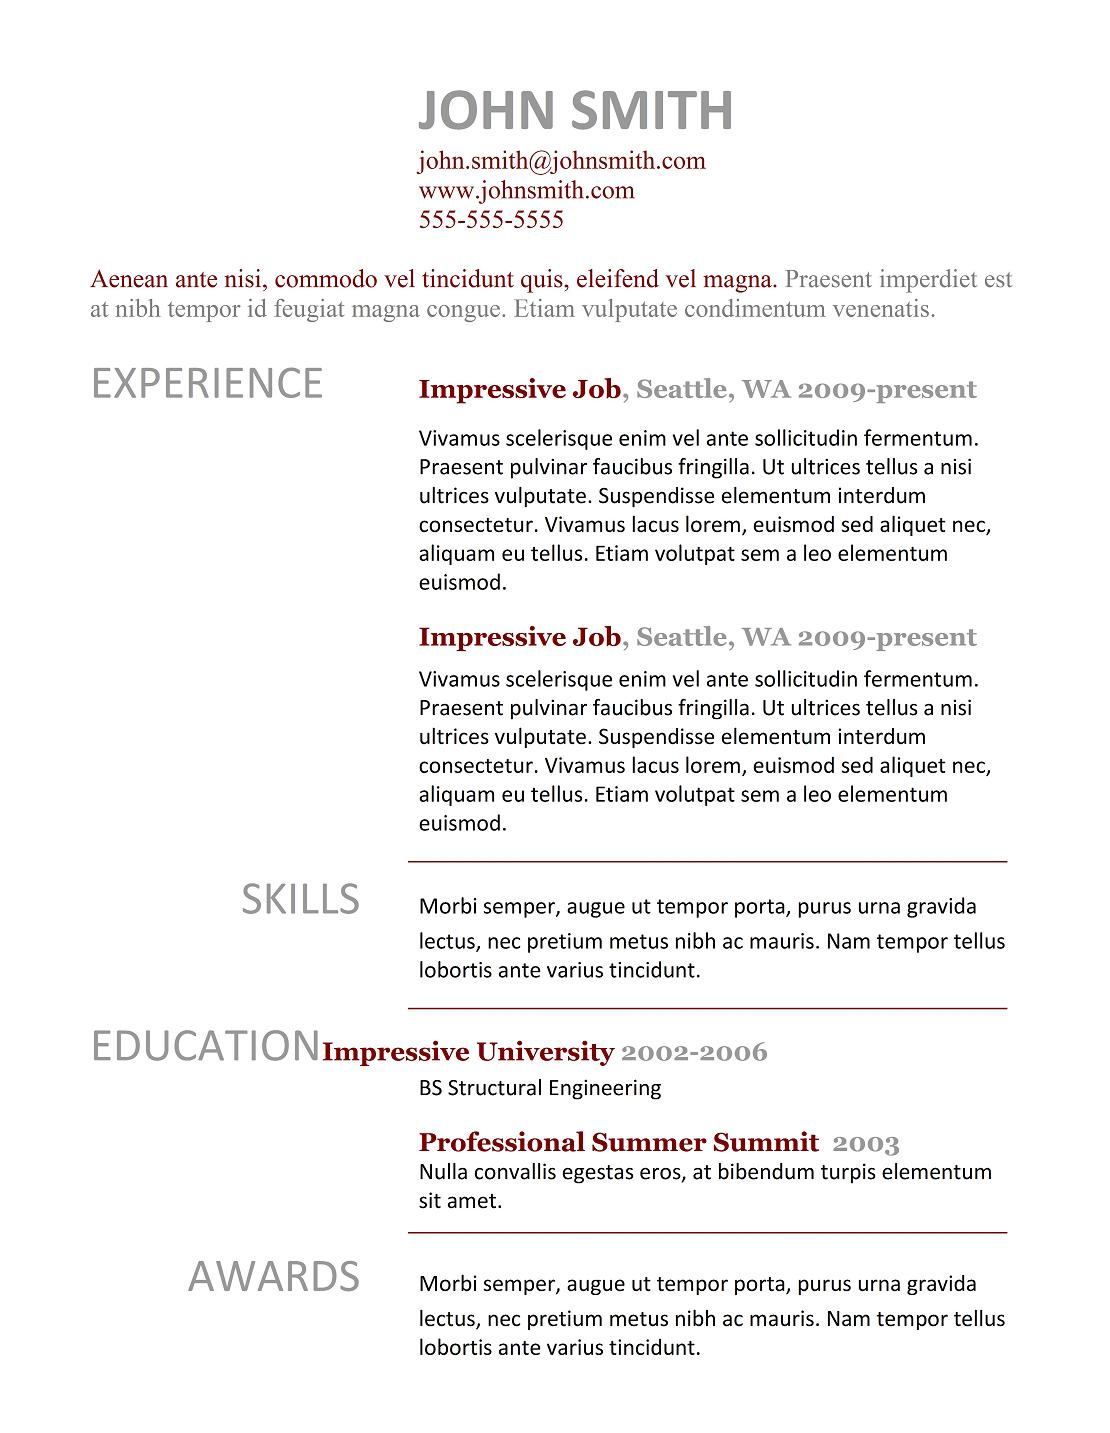 7 simple resume templates free download | Best Professional Resume ...